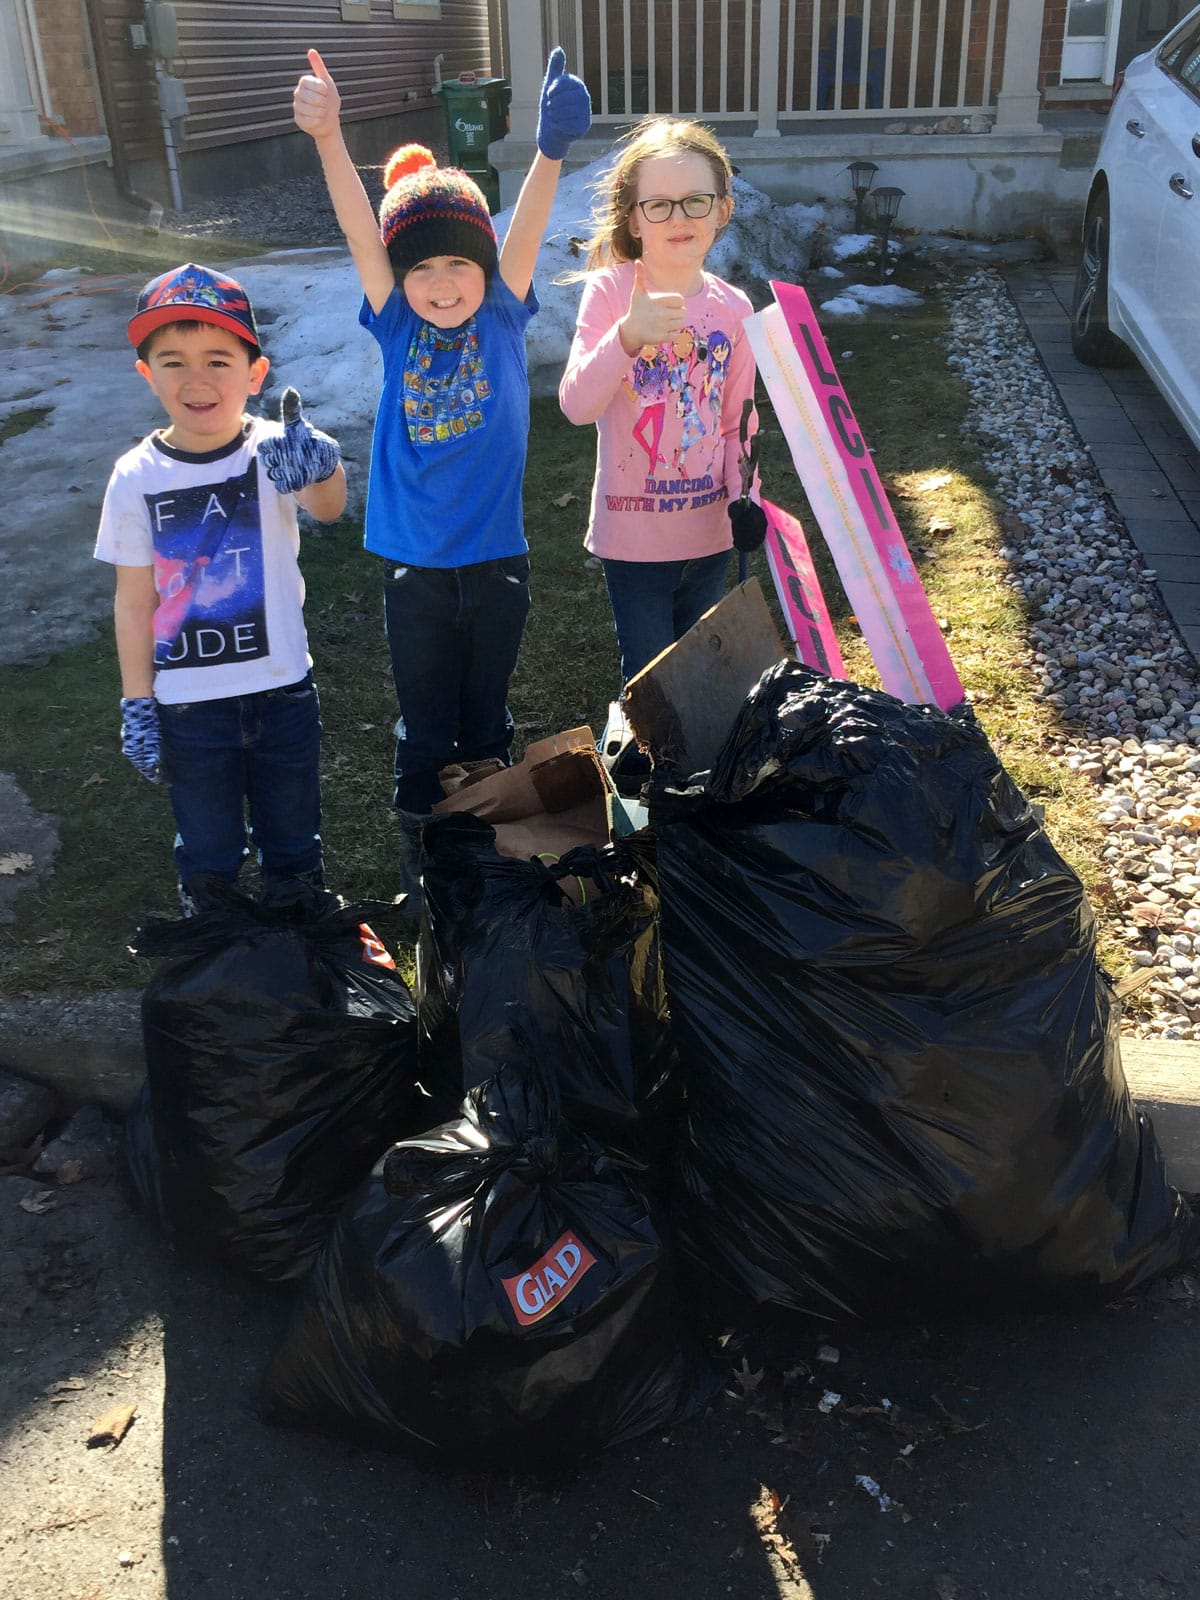 Clean-up at Brigatine Park and the surrounding area in Fairwinds.